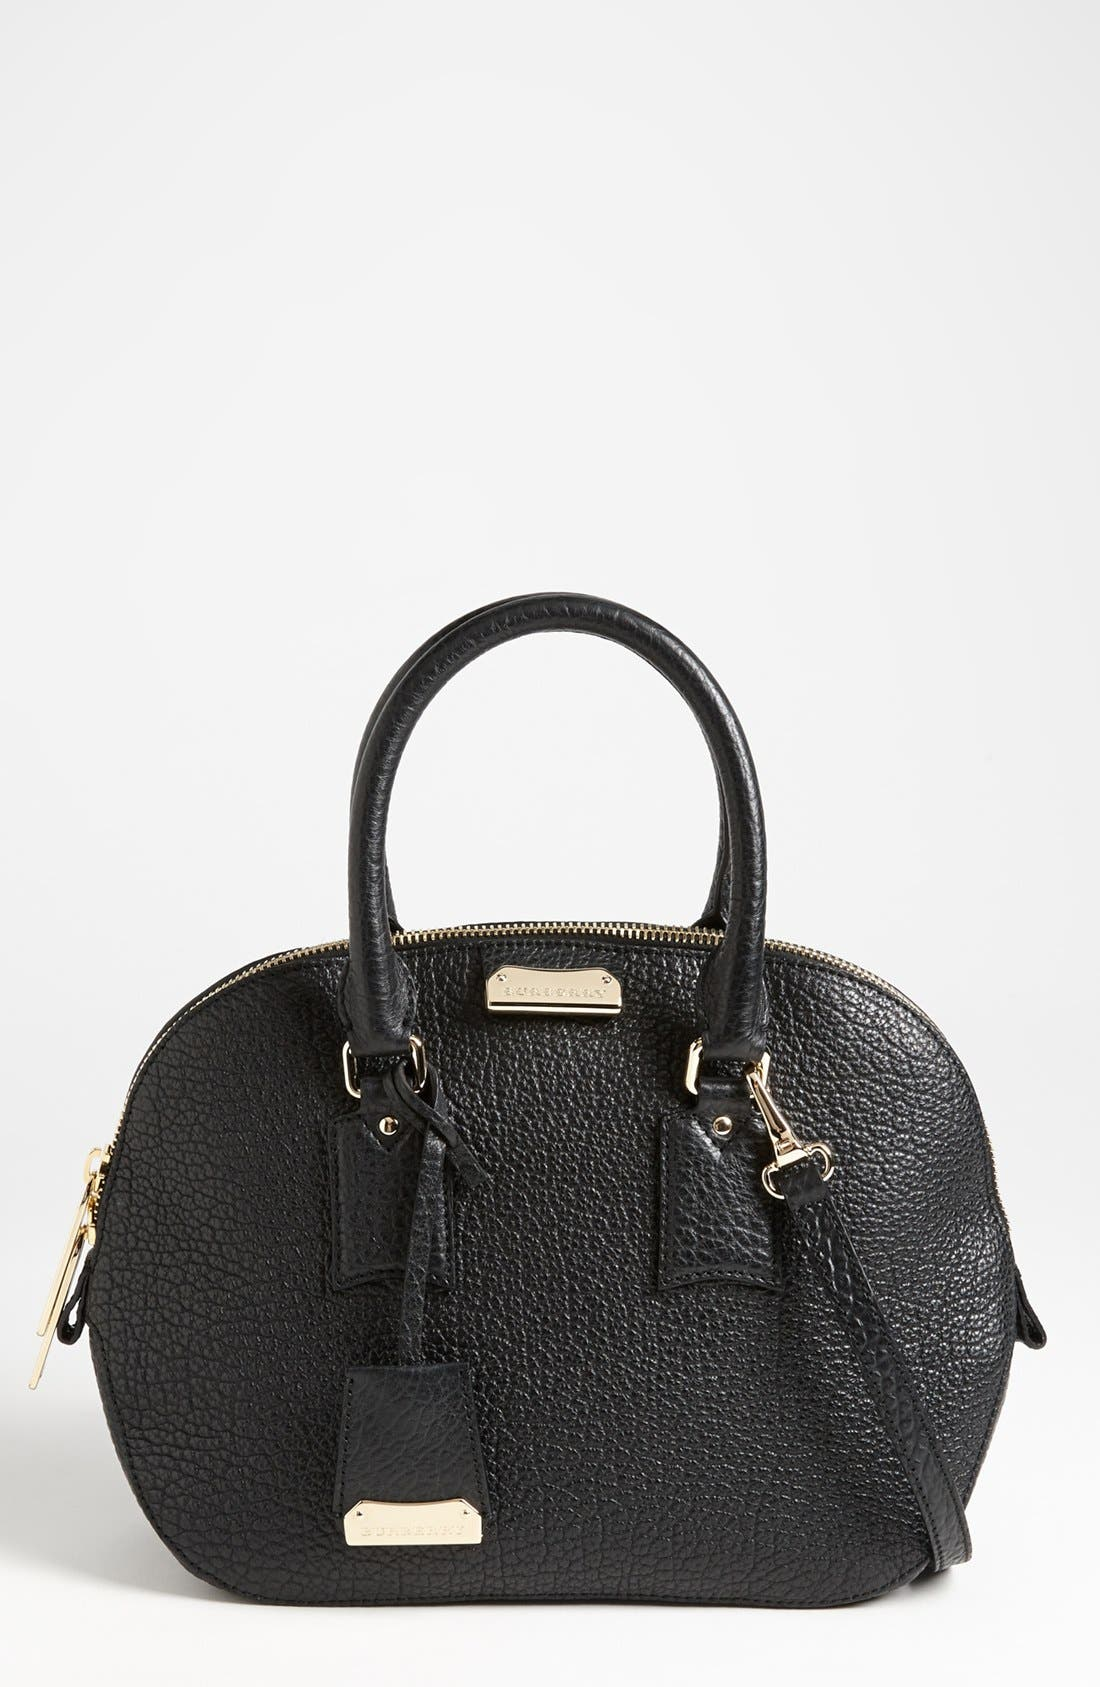 Main Image - Burberry 'Small Orchard' Leather Satchel